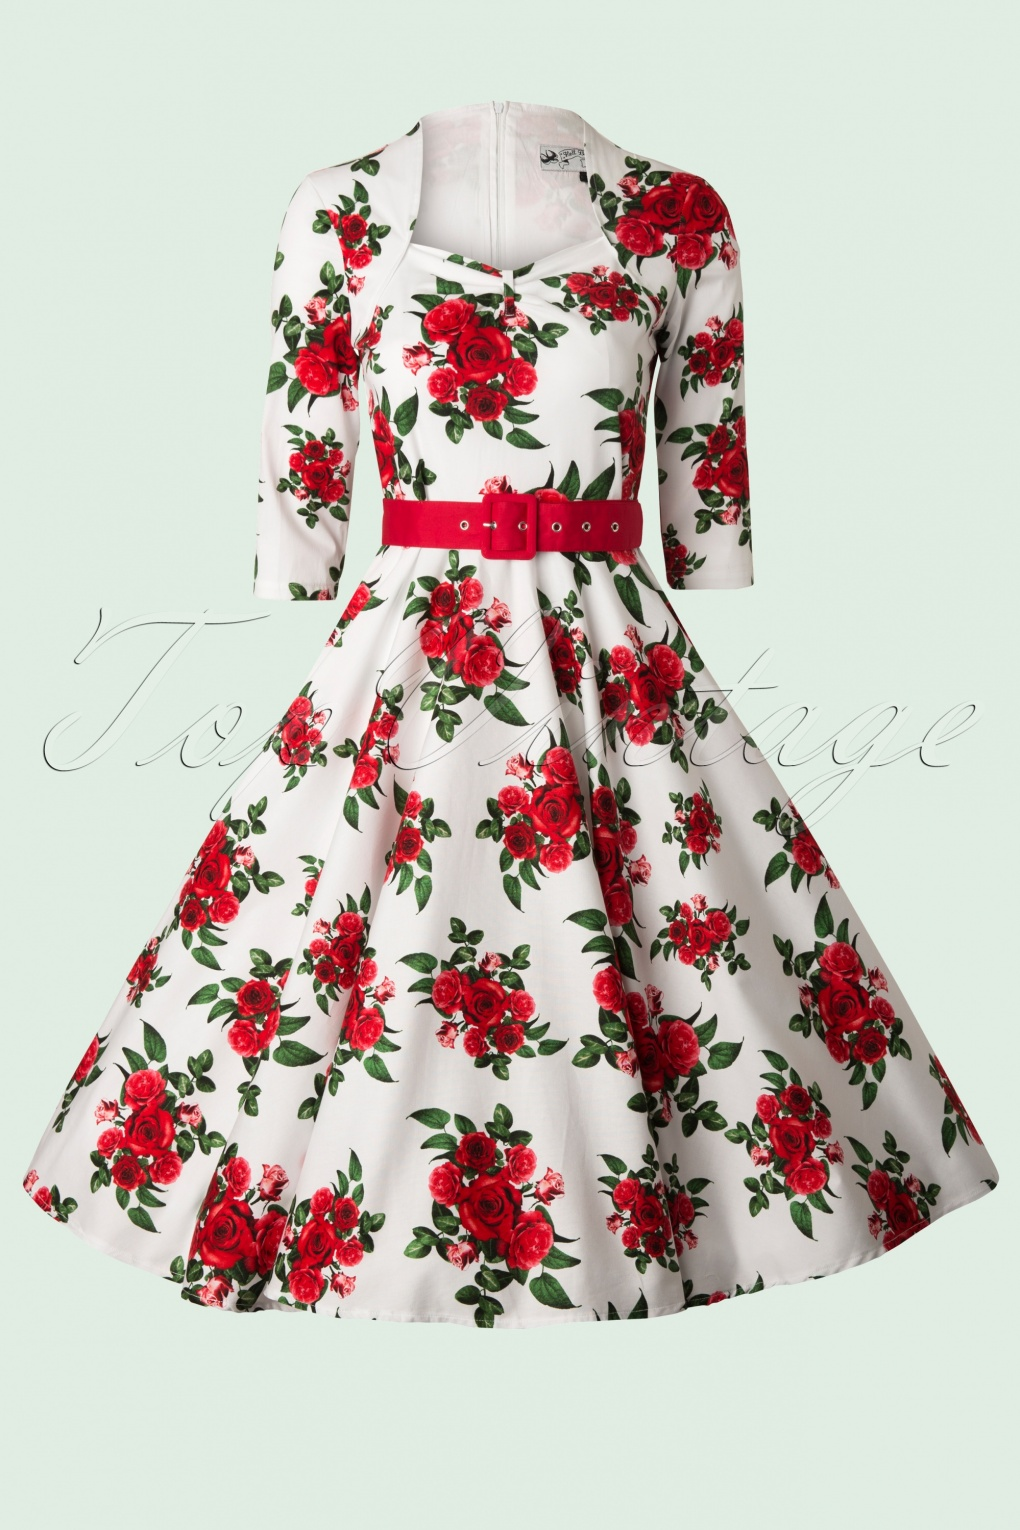 Swing Dresses | Vintage Inspired Dresses 50s Eternity Roses Swing Dress in White and Red £60.39 AT vintagedancer.com